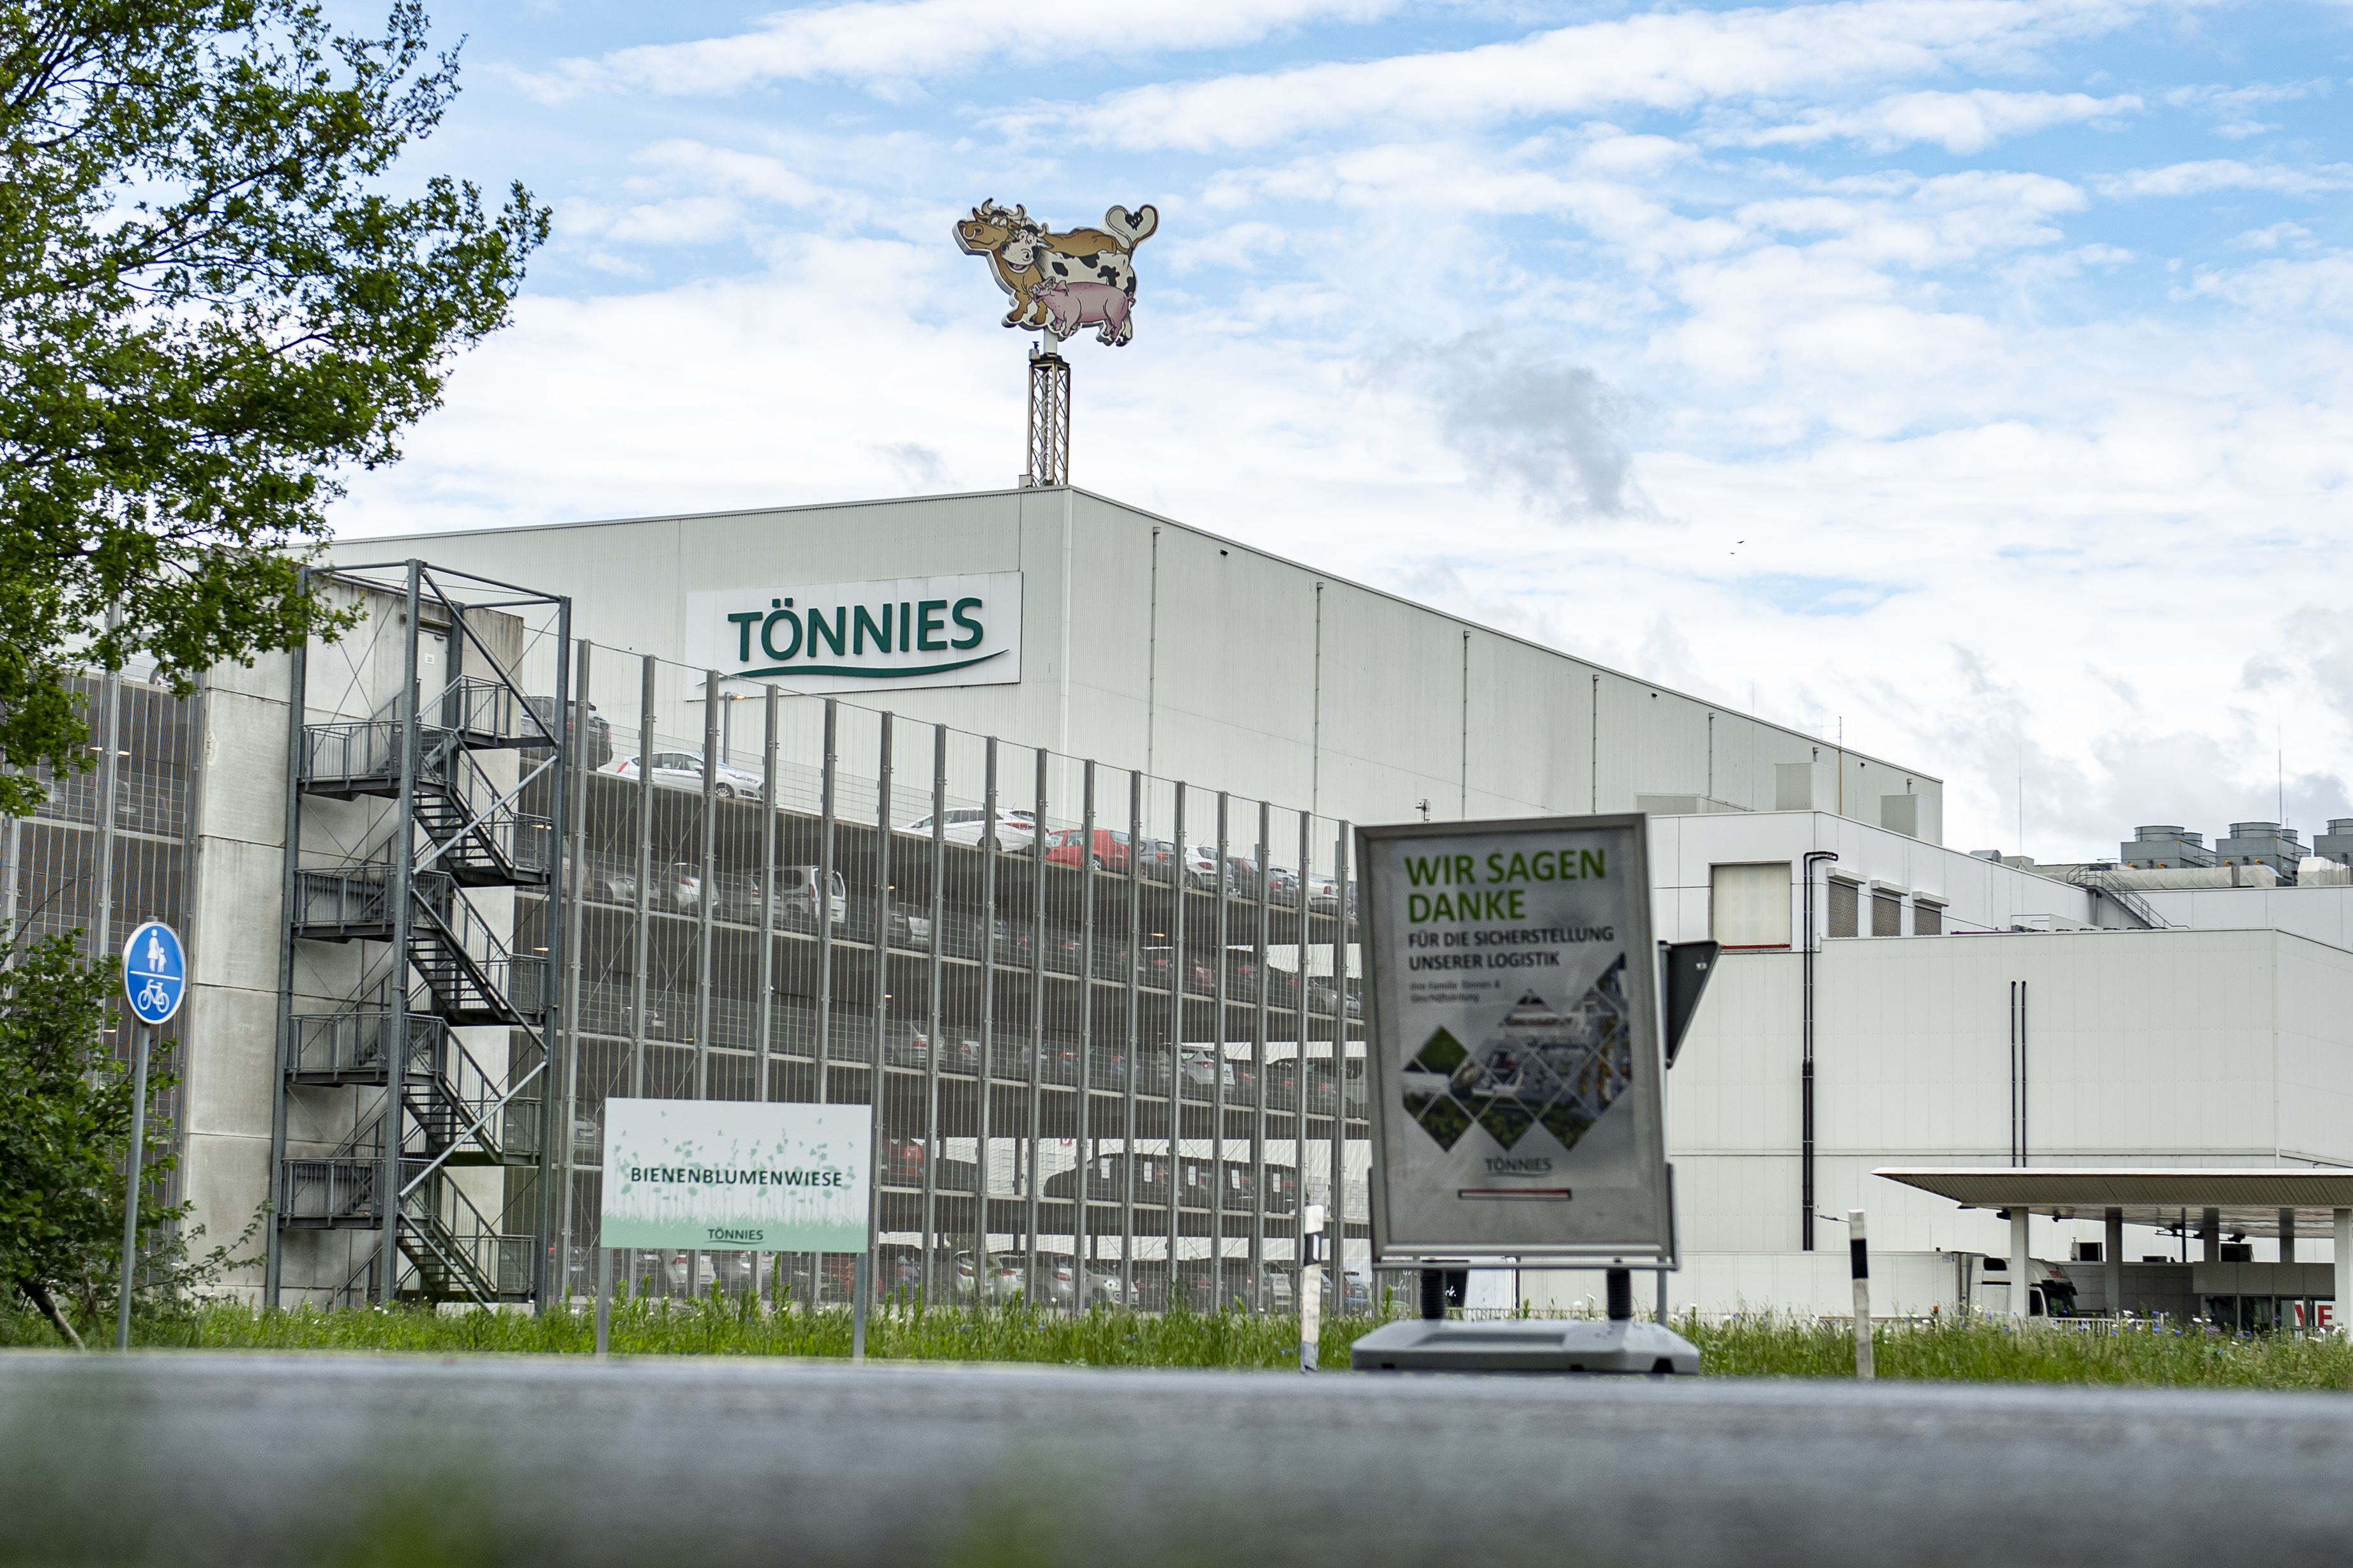 The exterior of the Tönnies meat factory in Rheda-Wiedenbrück, Germany, is shown on May 11.